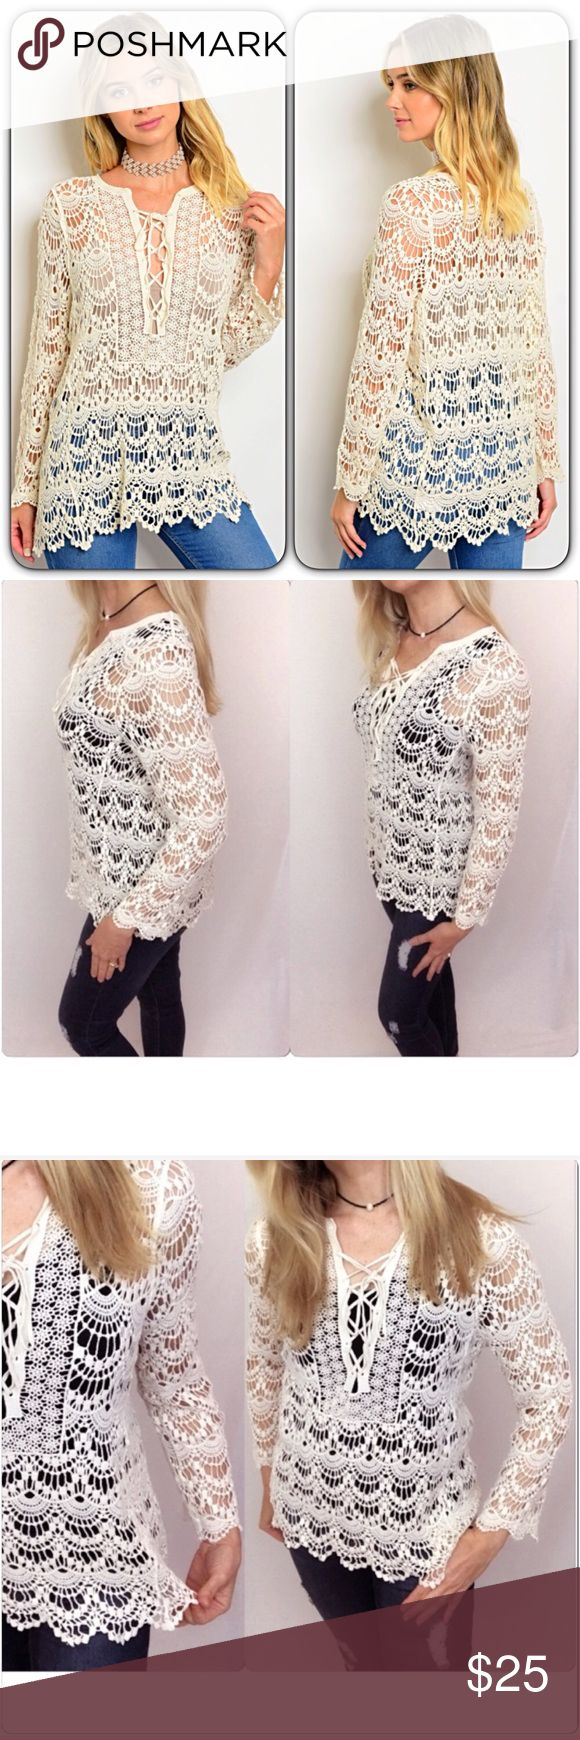 """Crochet Lace Up Tunic Top 2/4 Small Love this stunning crochet lace cover up top. Great layering piece with cami/tank or even wear as swimsuit coverup. Lace up front mini bell sleeves - Cream 100% Cotton Off White Lace Top scalloped ruffle like hem cozy loose knit  Small 2/4 Bust 32-34 Length 27"""" Sweaters"""